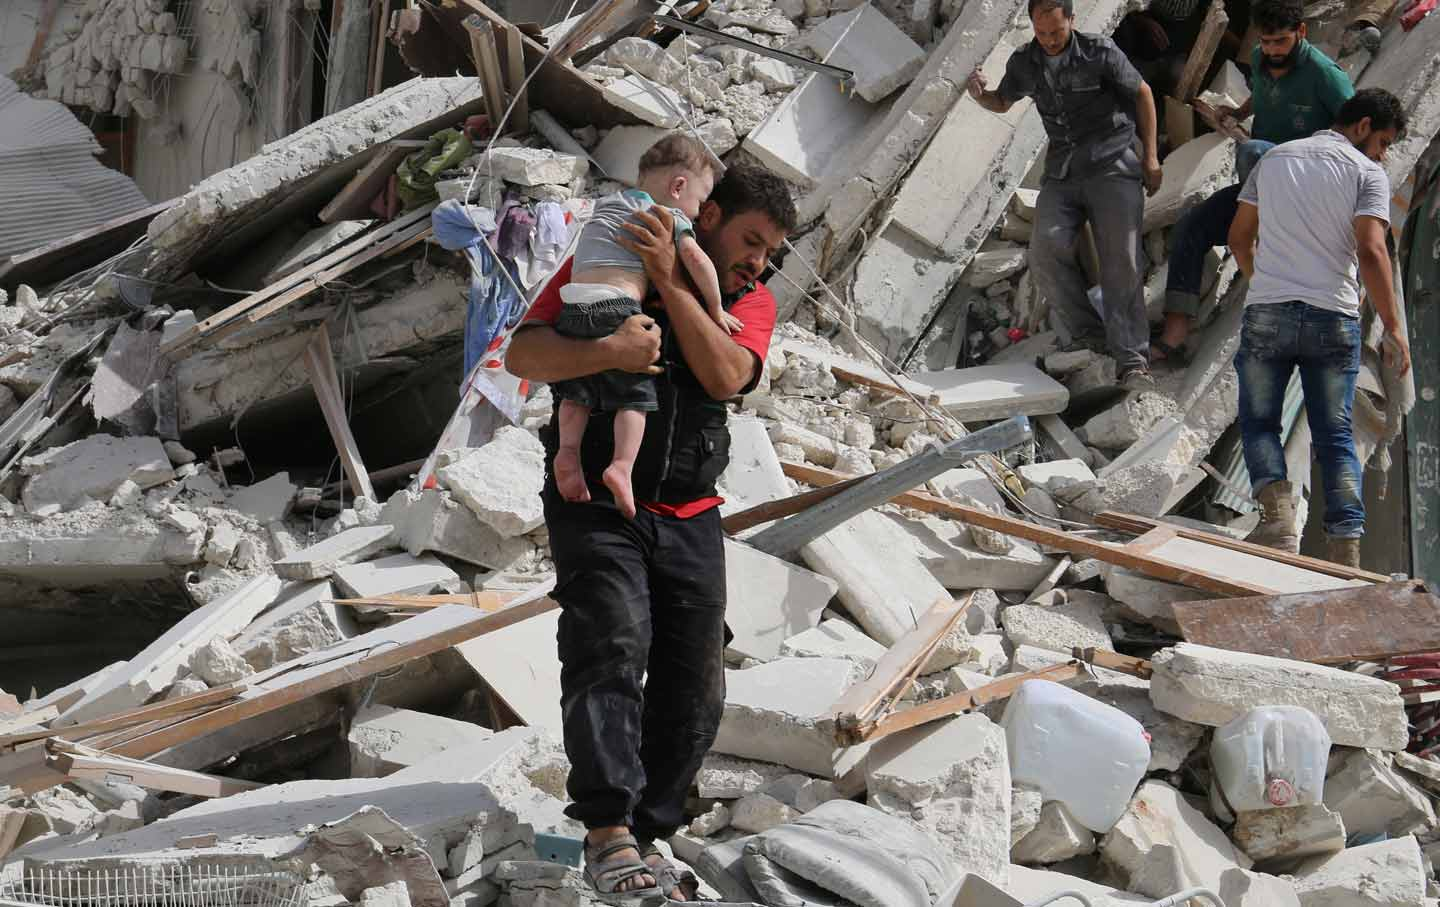 man carrying injured child from rubble